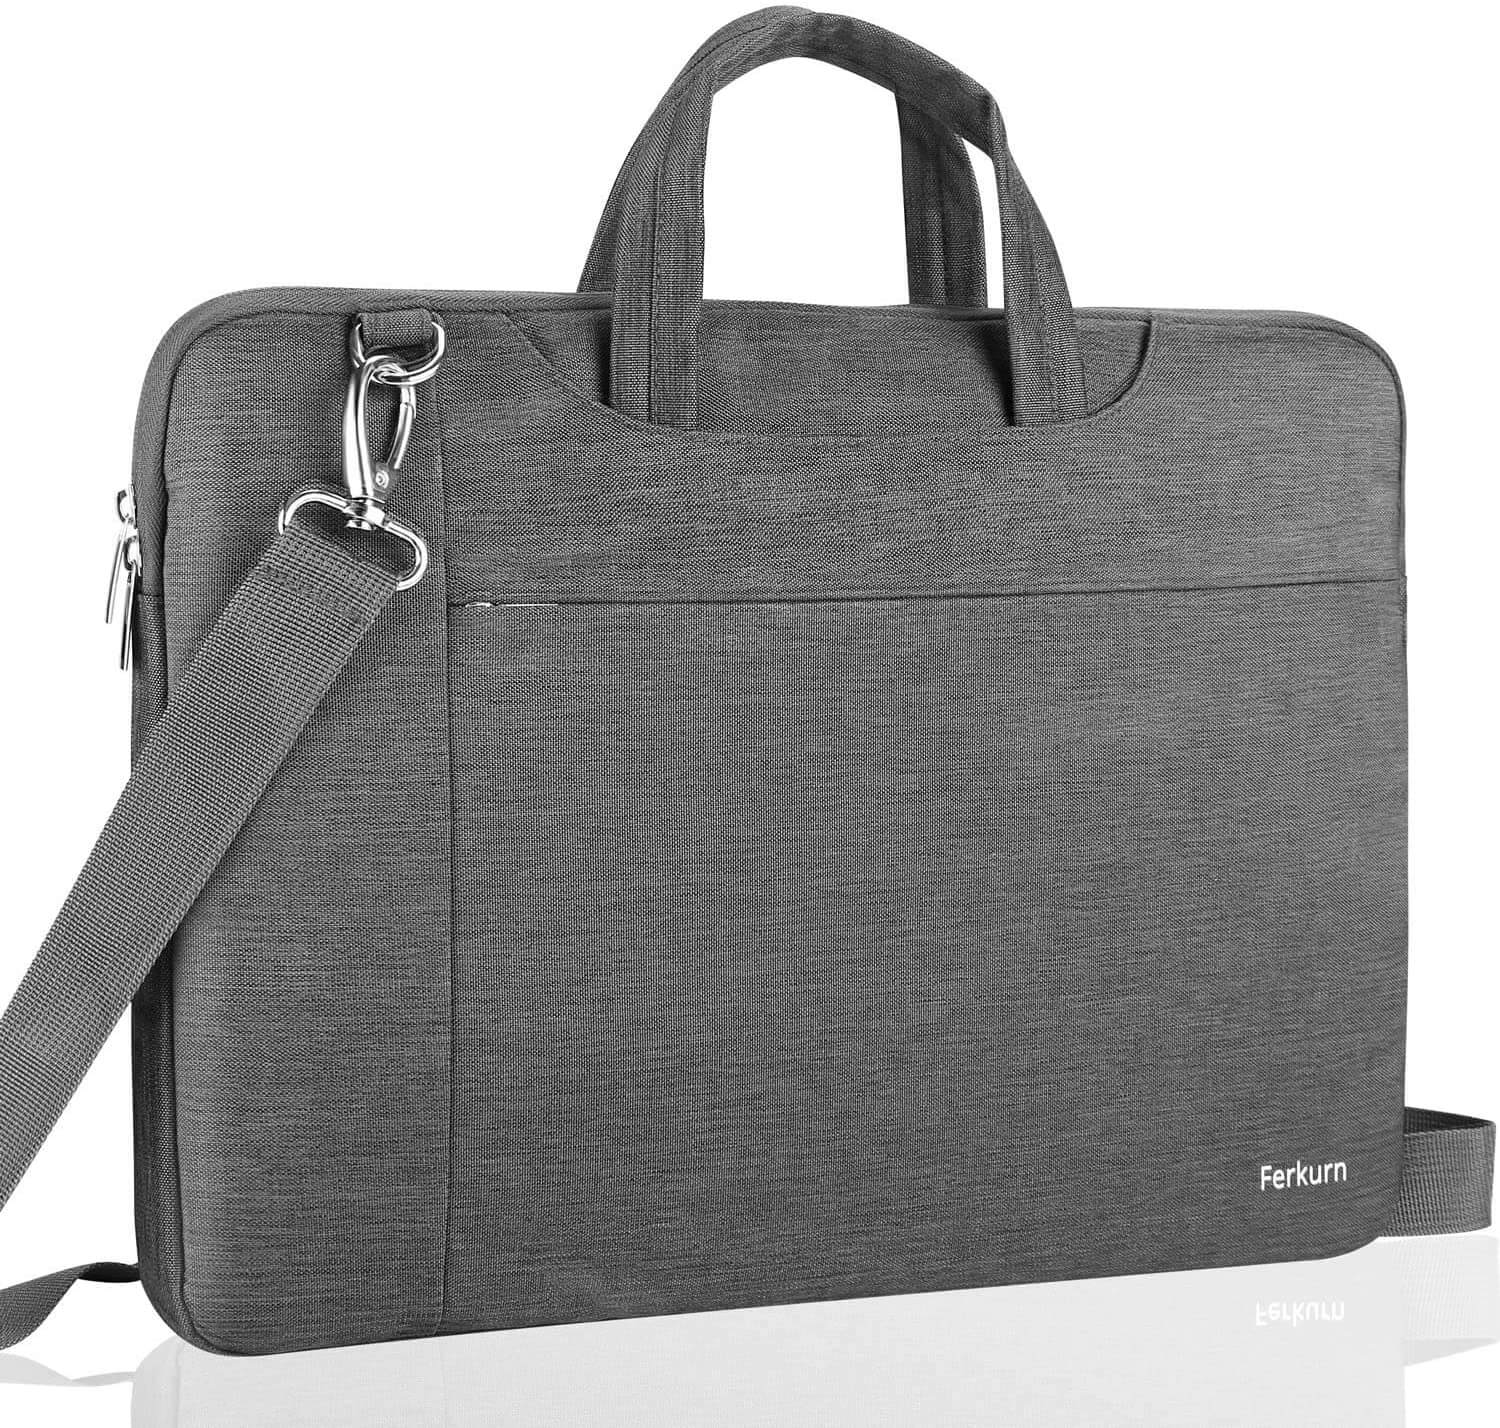 Ferkurn Laptop Bag Sleeve Carrying Case Compatible with 17 17.3 Inch